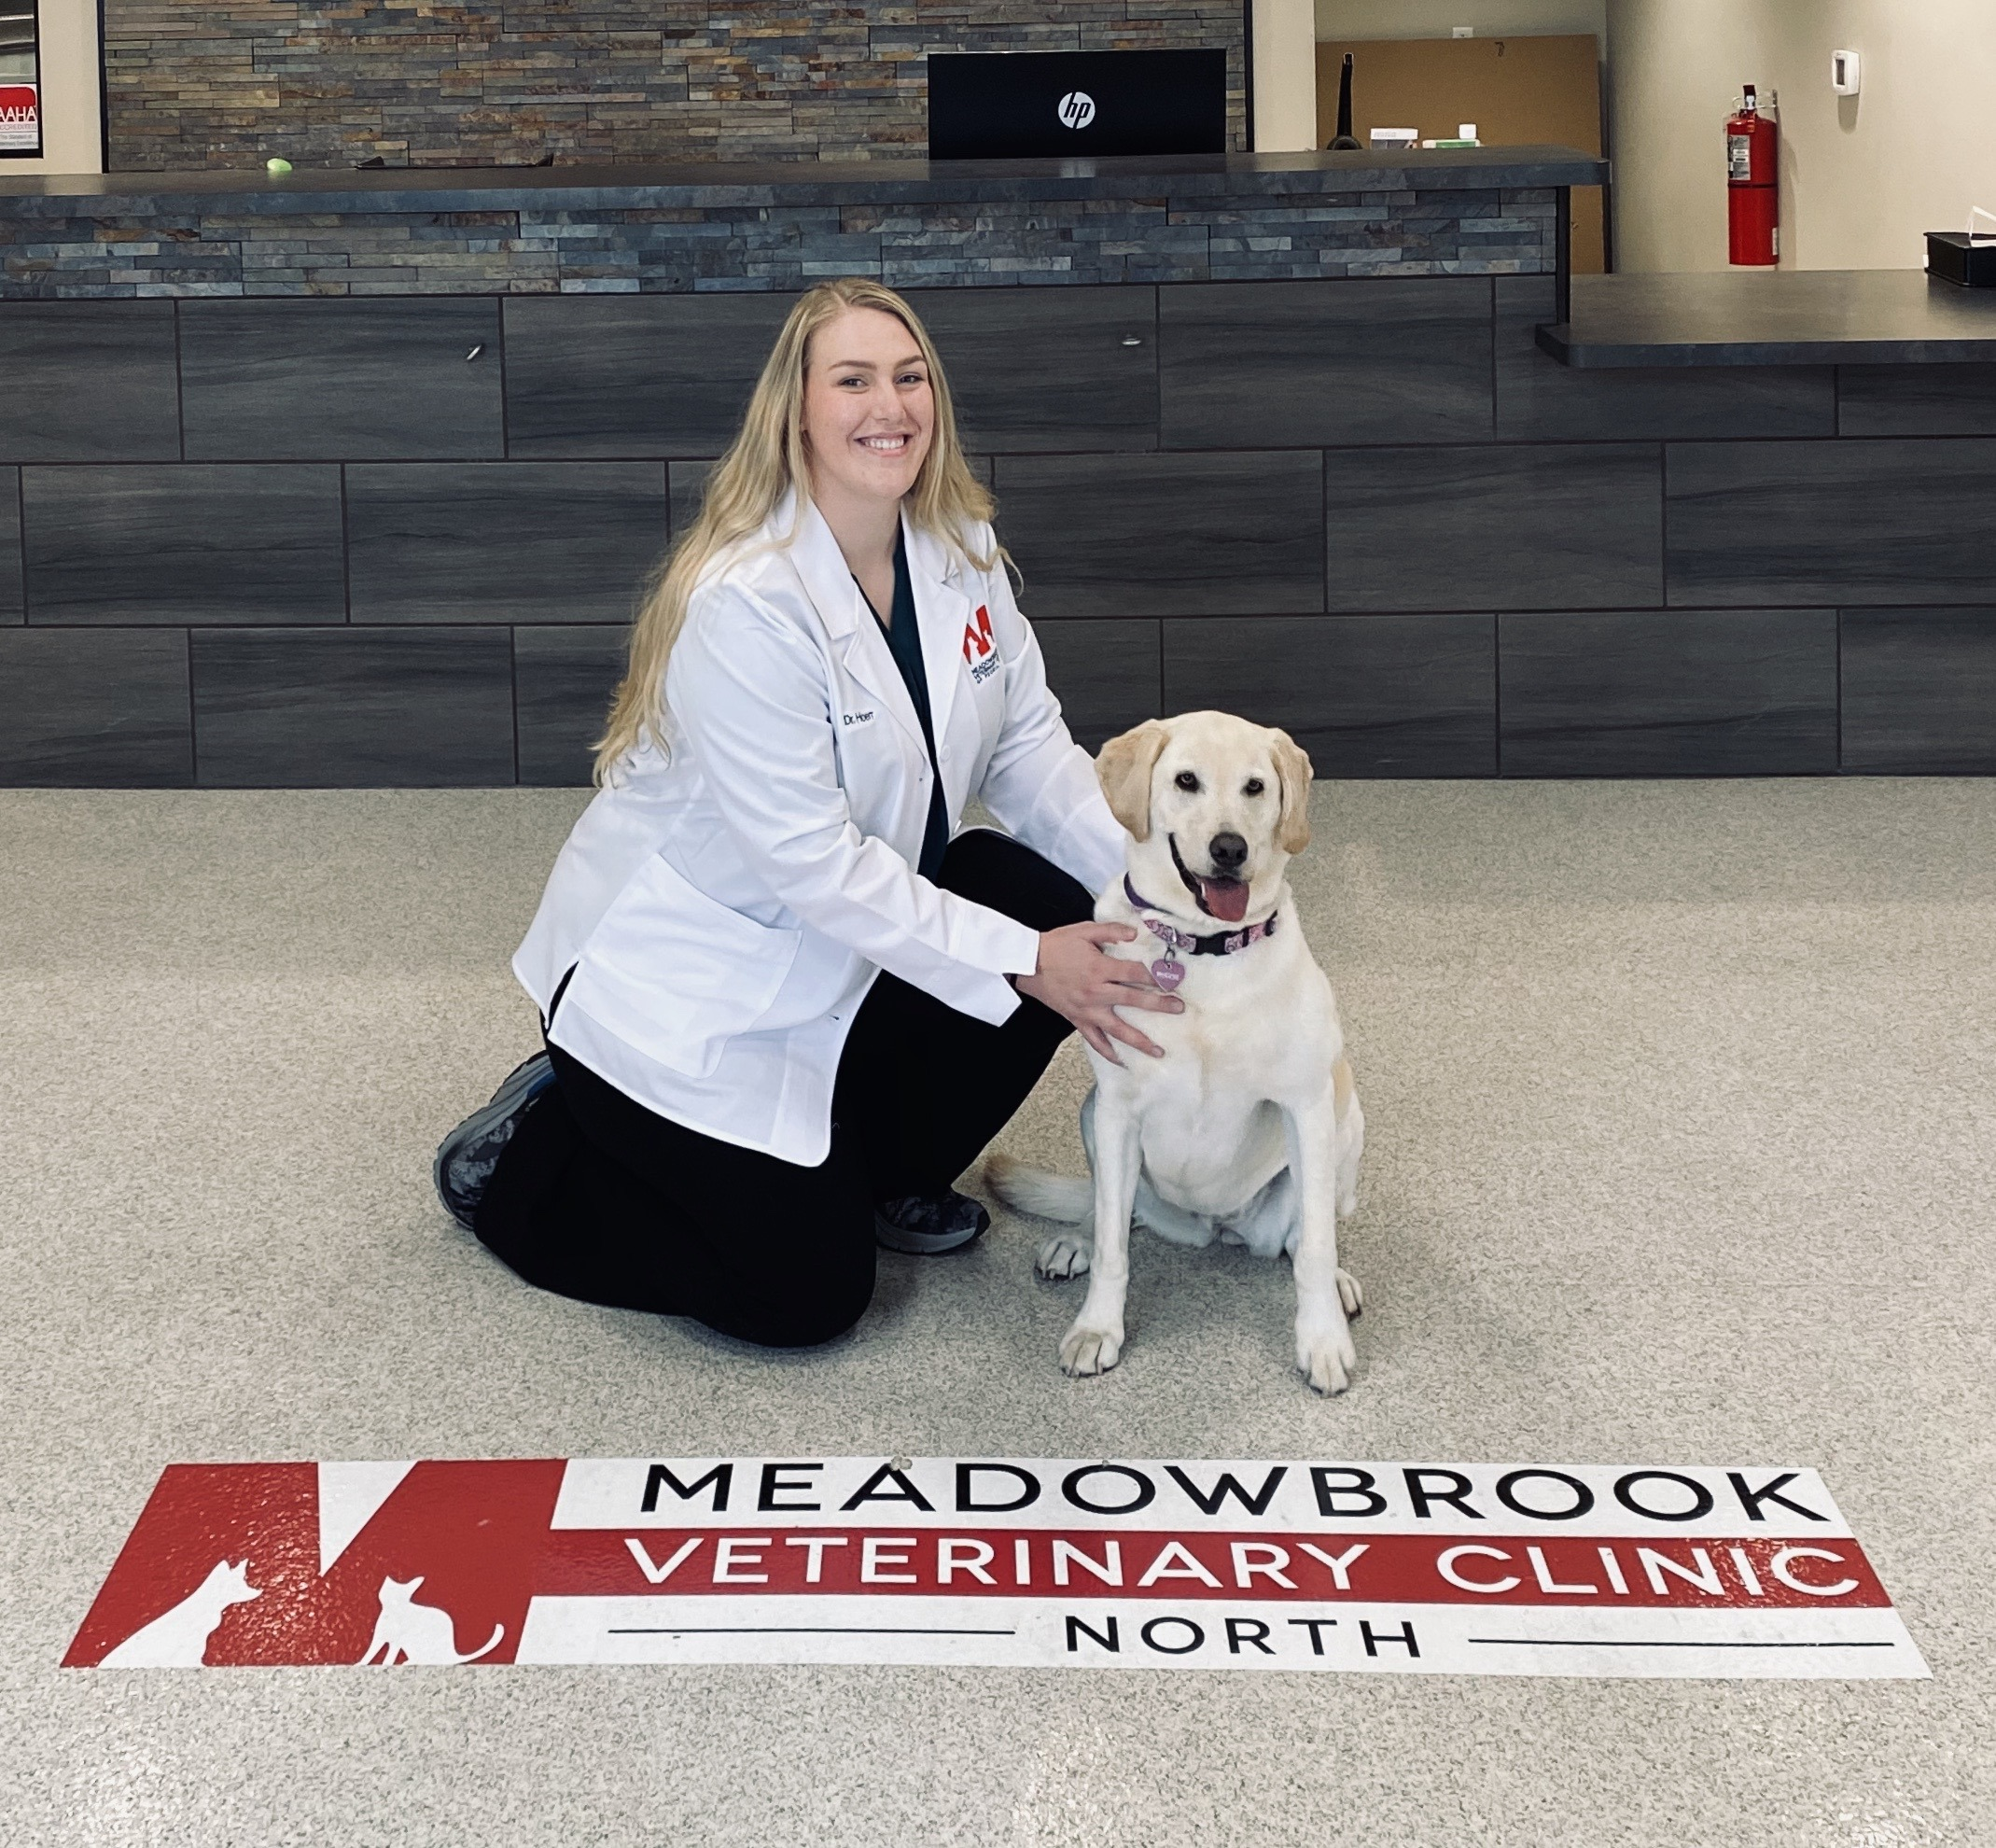 Jaclyn Hoerr, BVMS kneeling on floor of Meadowbrook Clinic with dog.